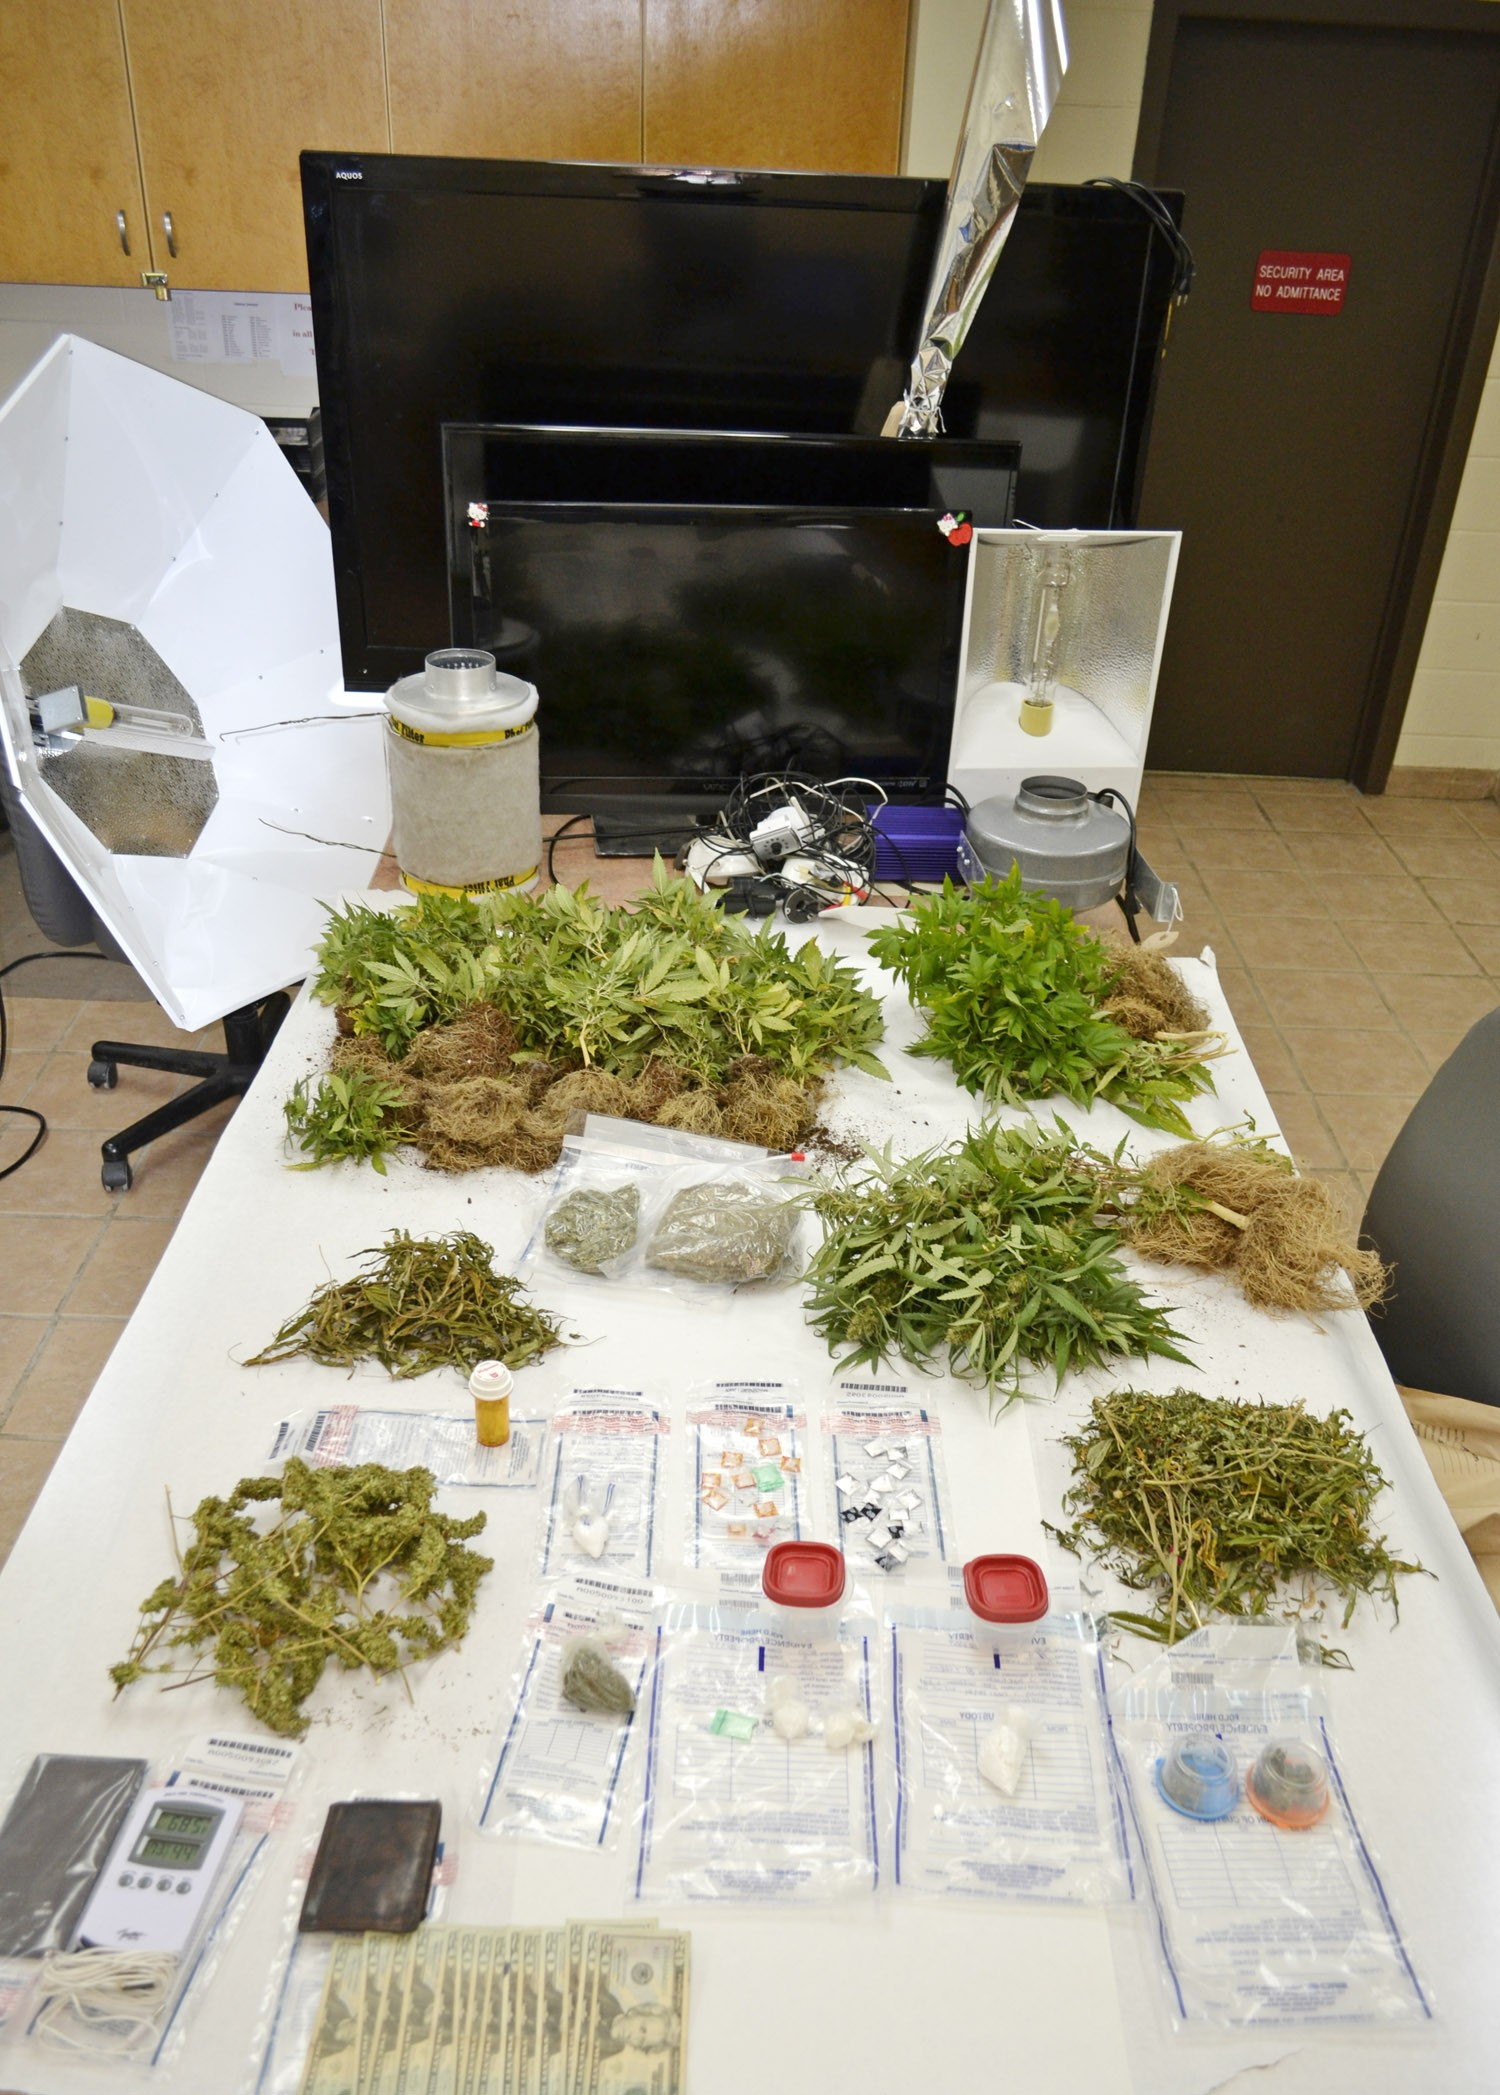 Atascosa County Sheriff's deputies were not expecting to find live marijuana plants, meth, cocaine and flat-screen T.V.s when they went to serve an arrest warrant on 25 year old Corey Contreras on Friday, April 11.